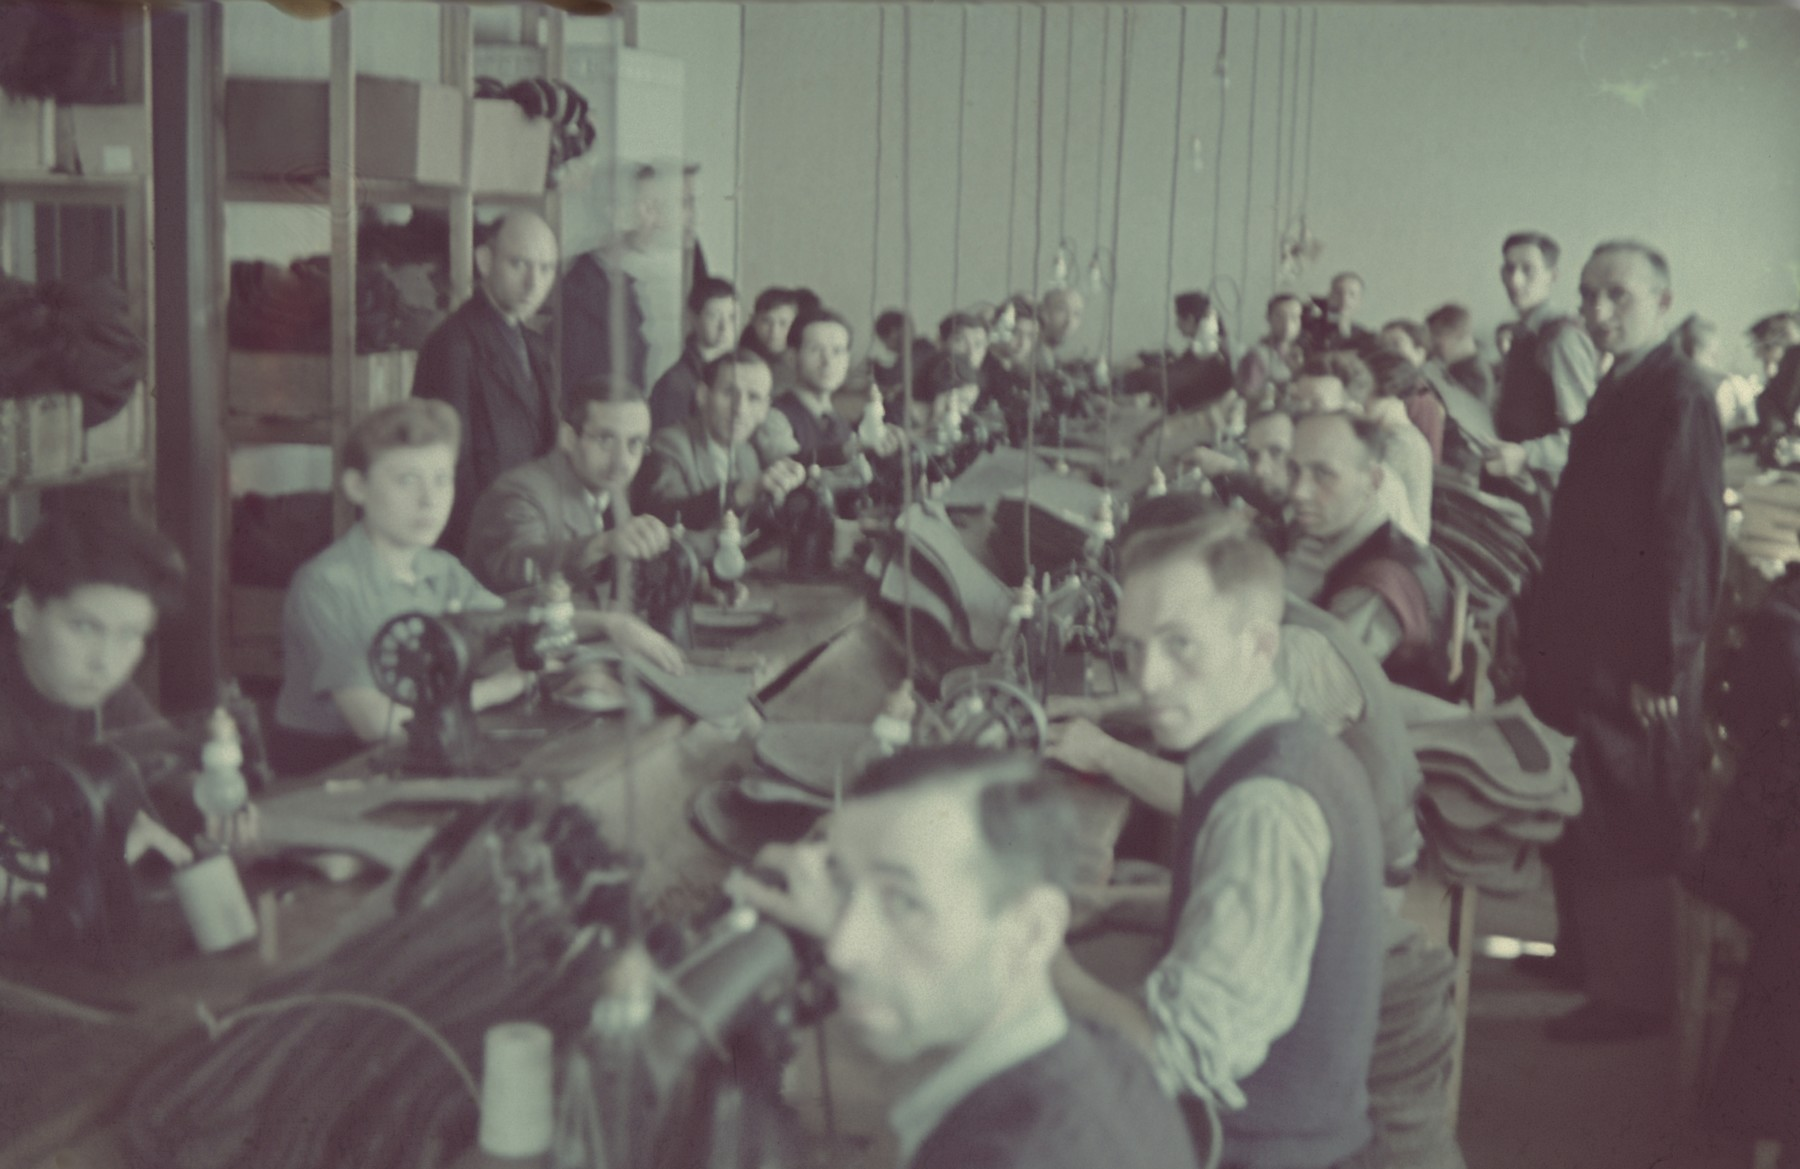 """Workers operate sewing machines in the saddle-making workshop of the Lodz ghetto.  Original German caption: """"Litzmannstadt-Getto, Sattlerei"""" (saddlery)."""